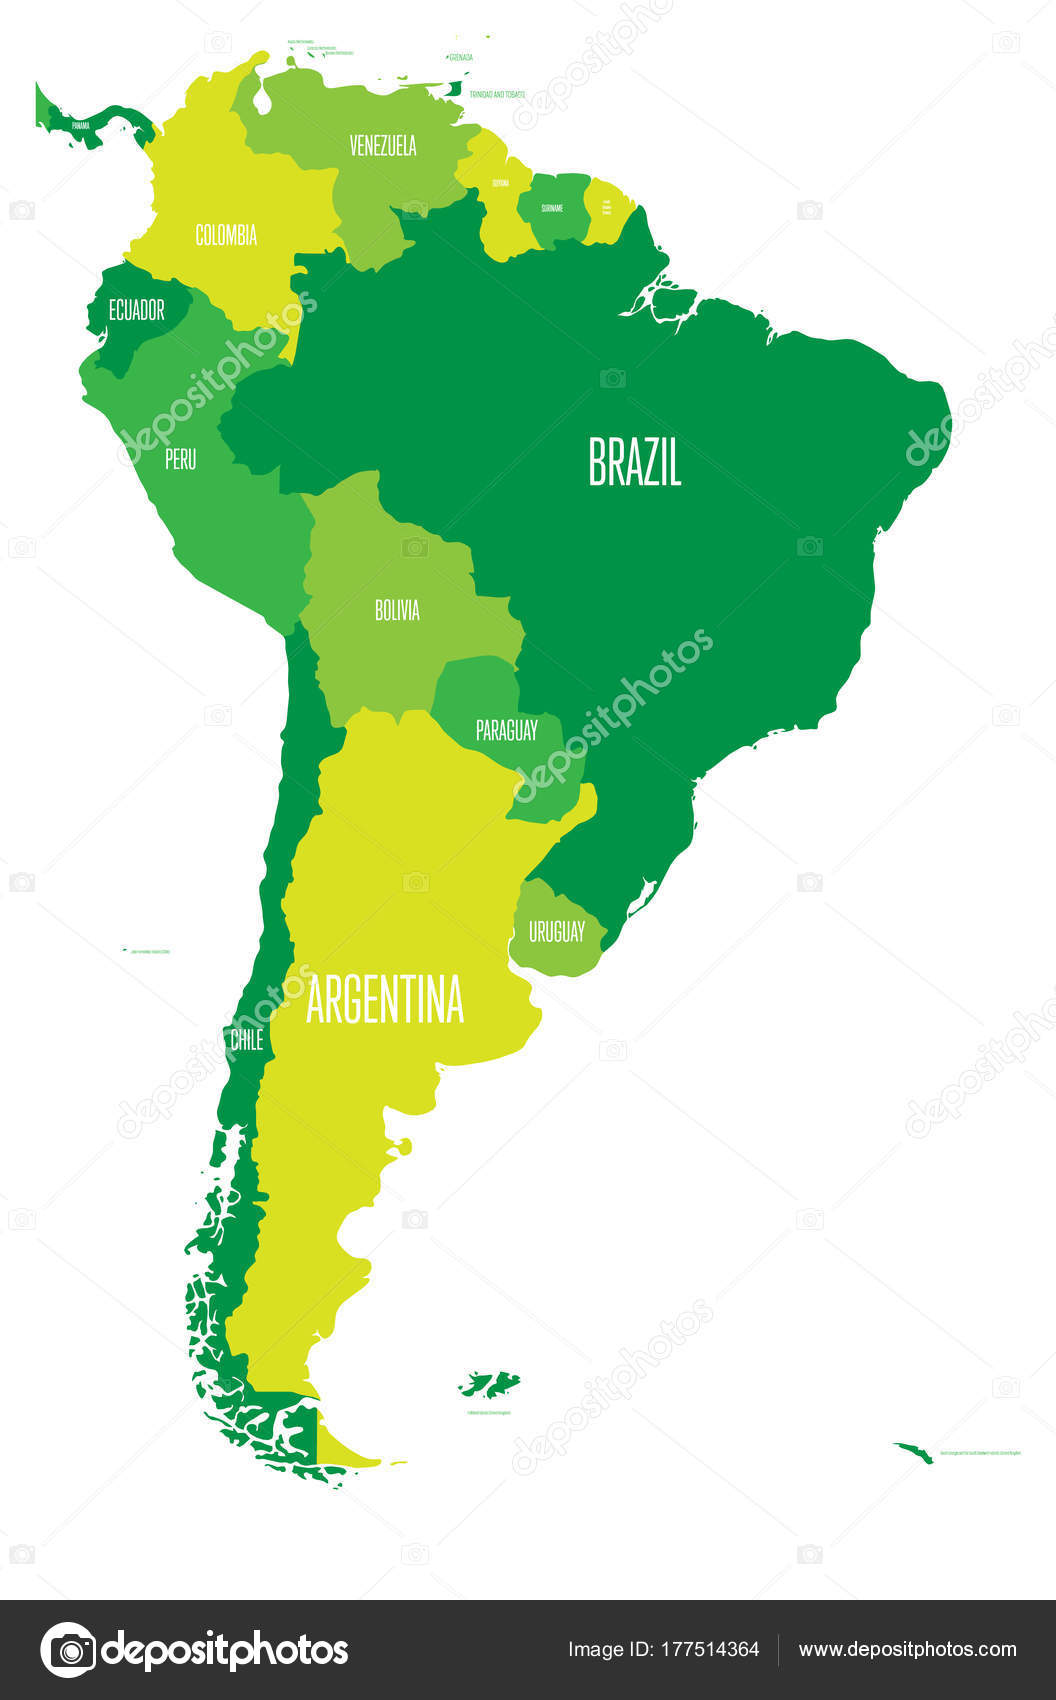 Political map of South America Simple flat vector map with country